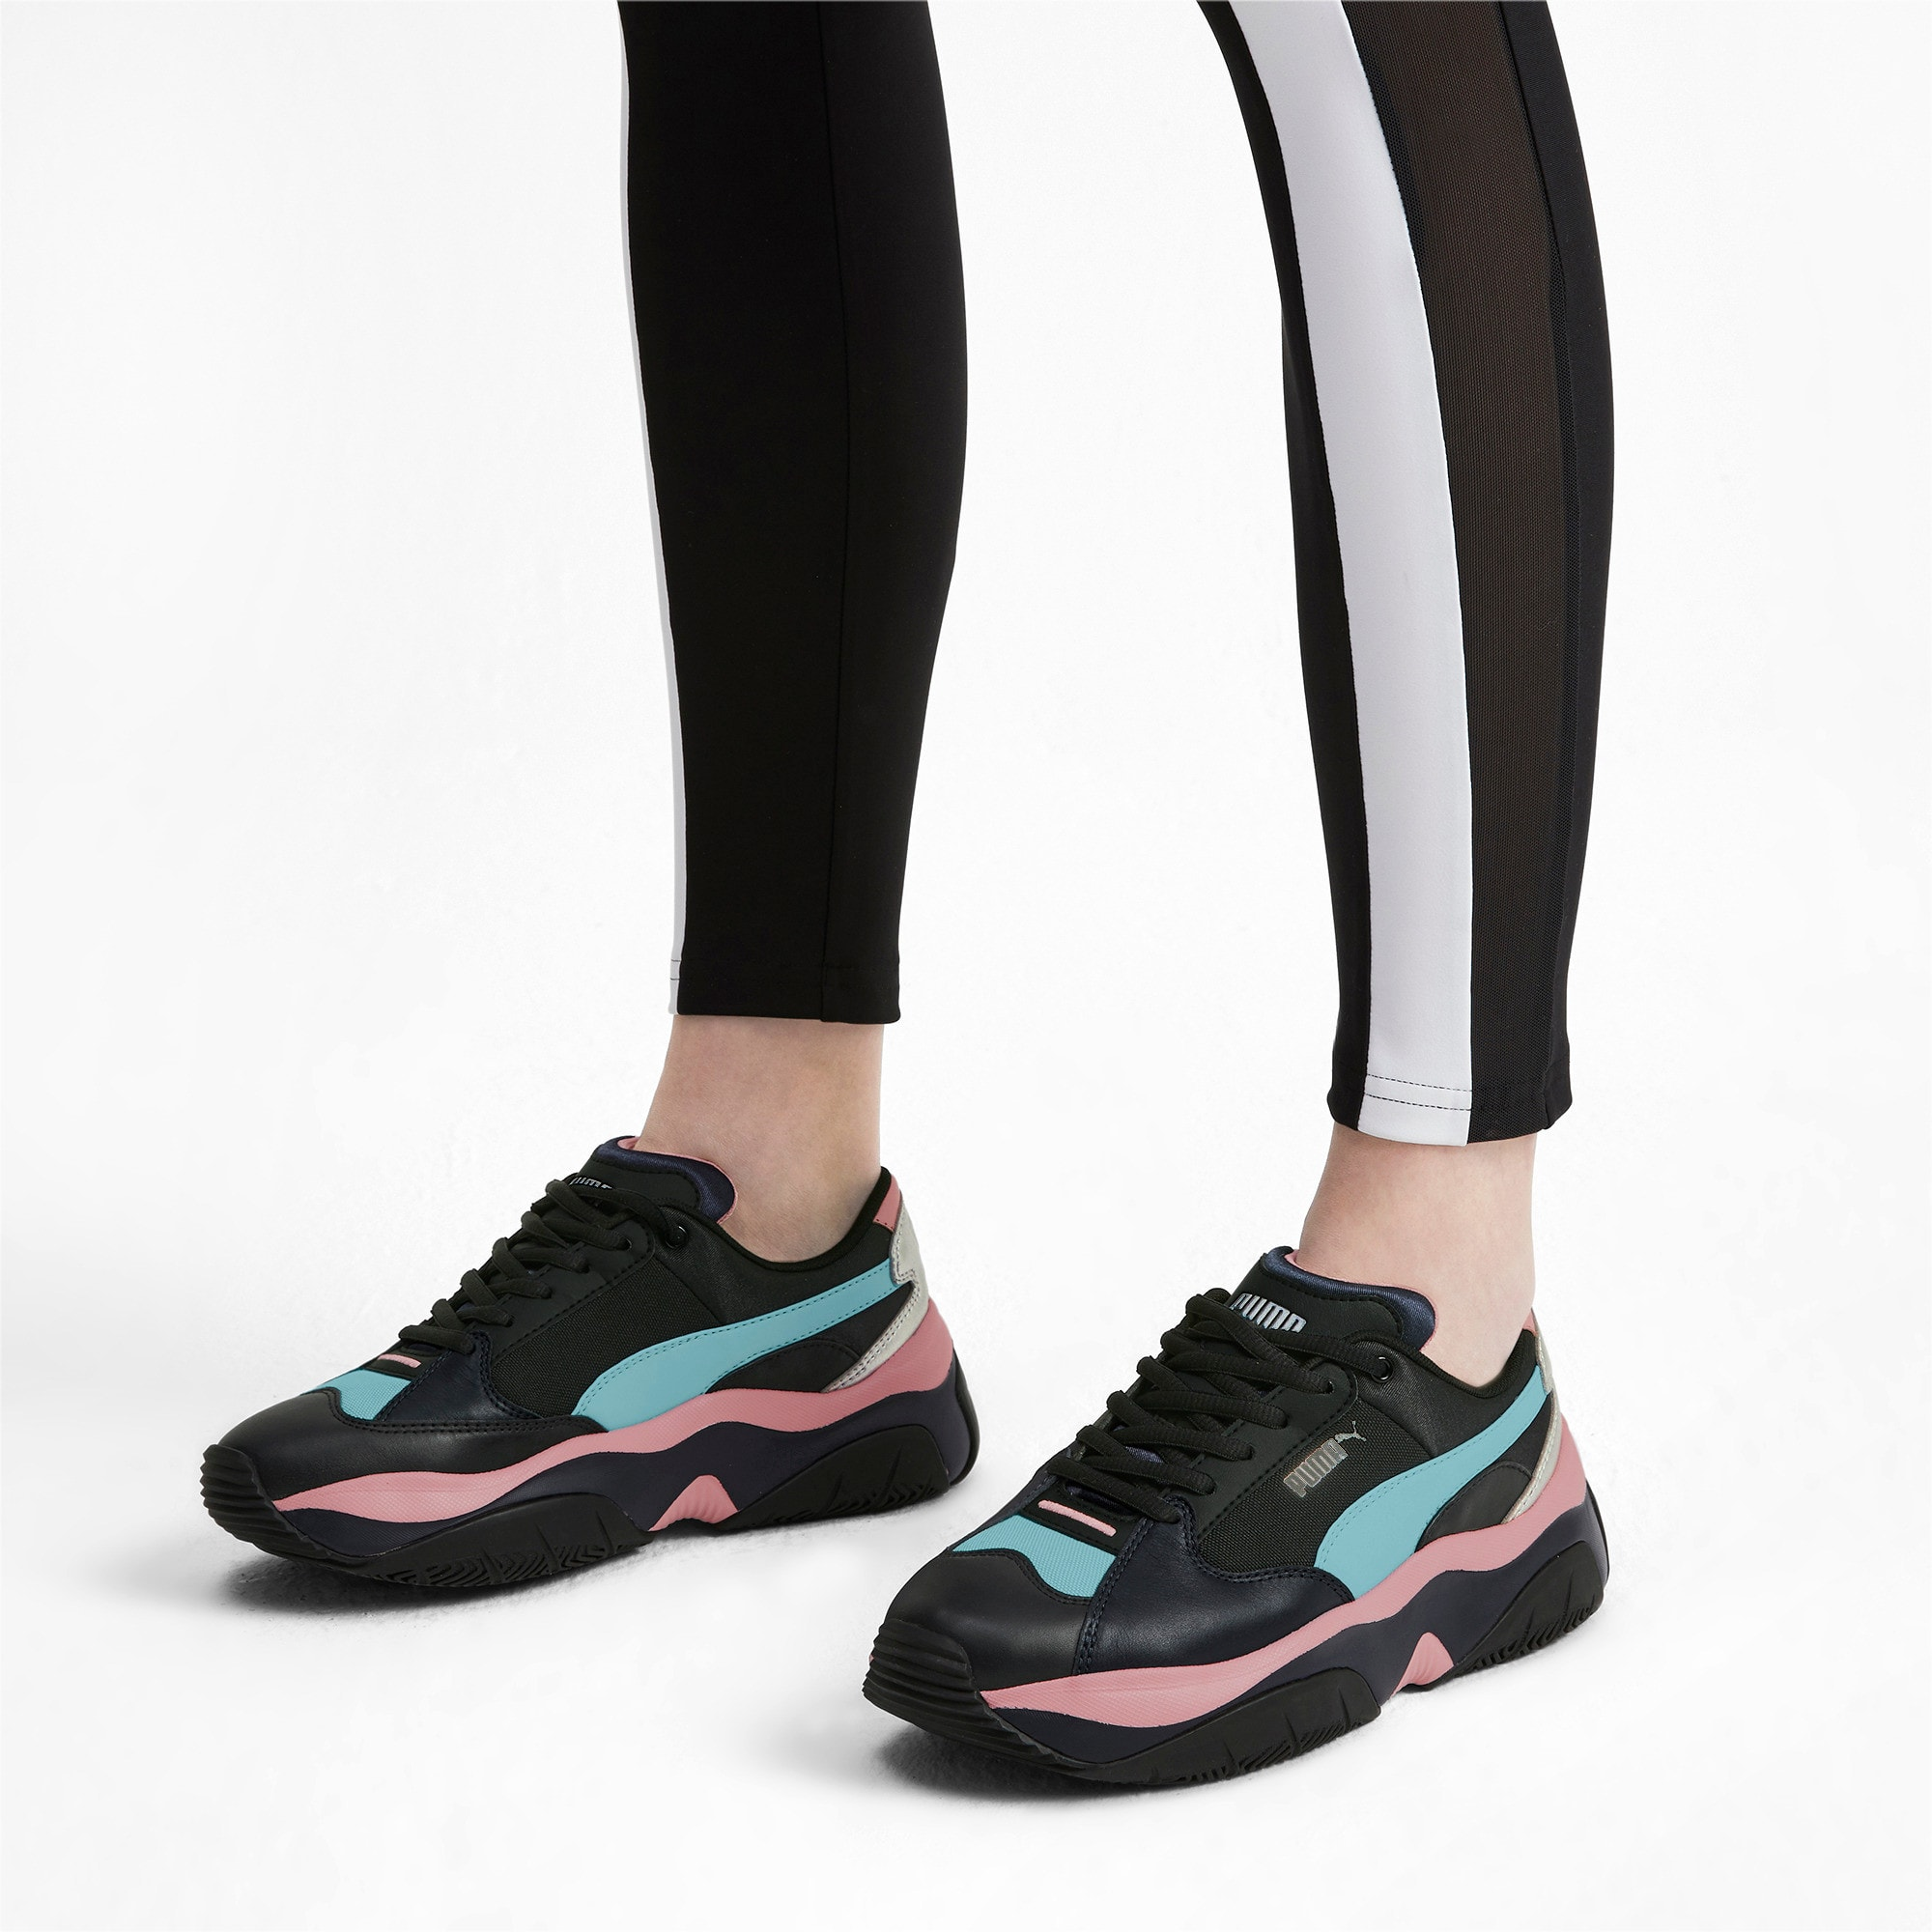 Thumbnail 2 of STORM.Y Metallic Women's Trainers, Puma Black, medium